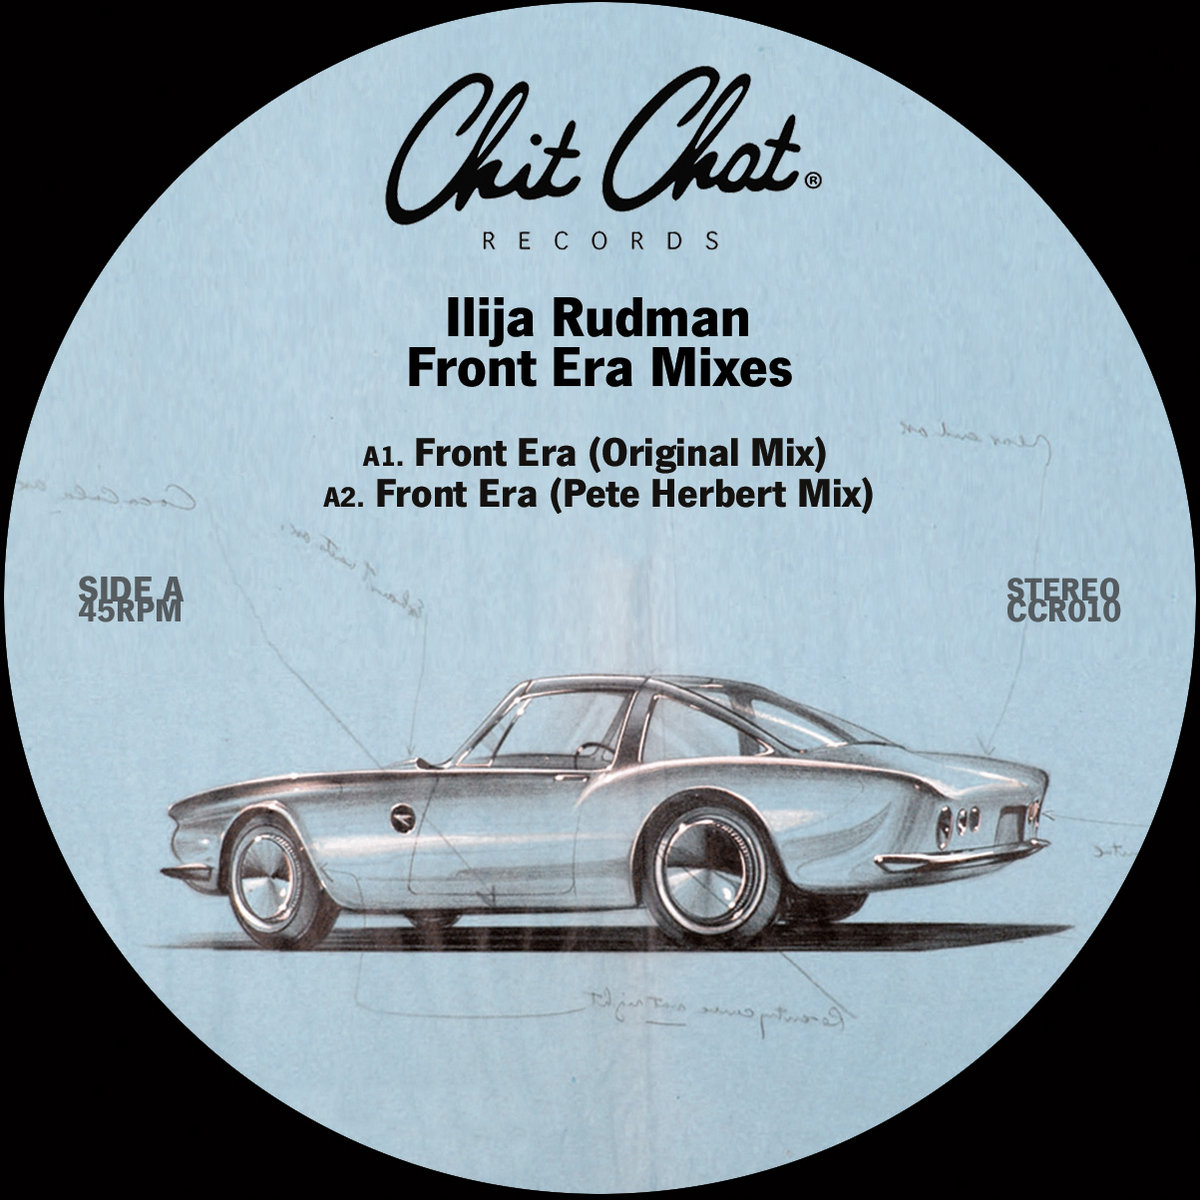 Front Era (Pete Herbert Mix) | Chit Chat Records